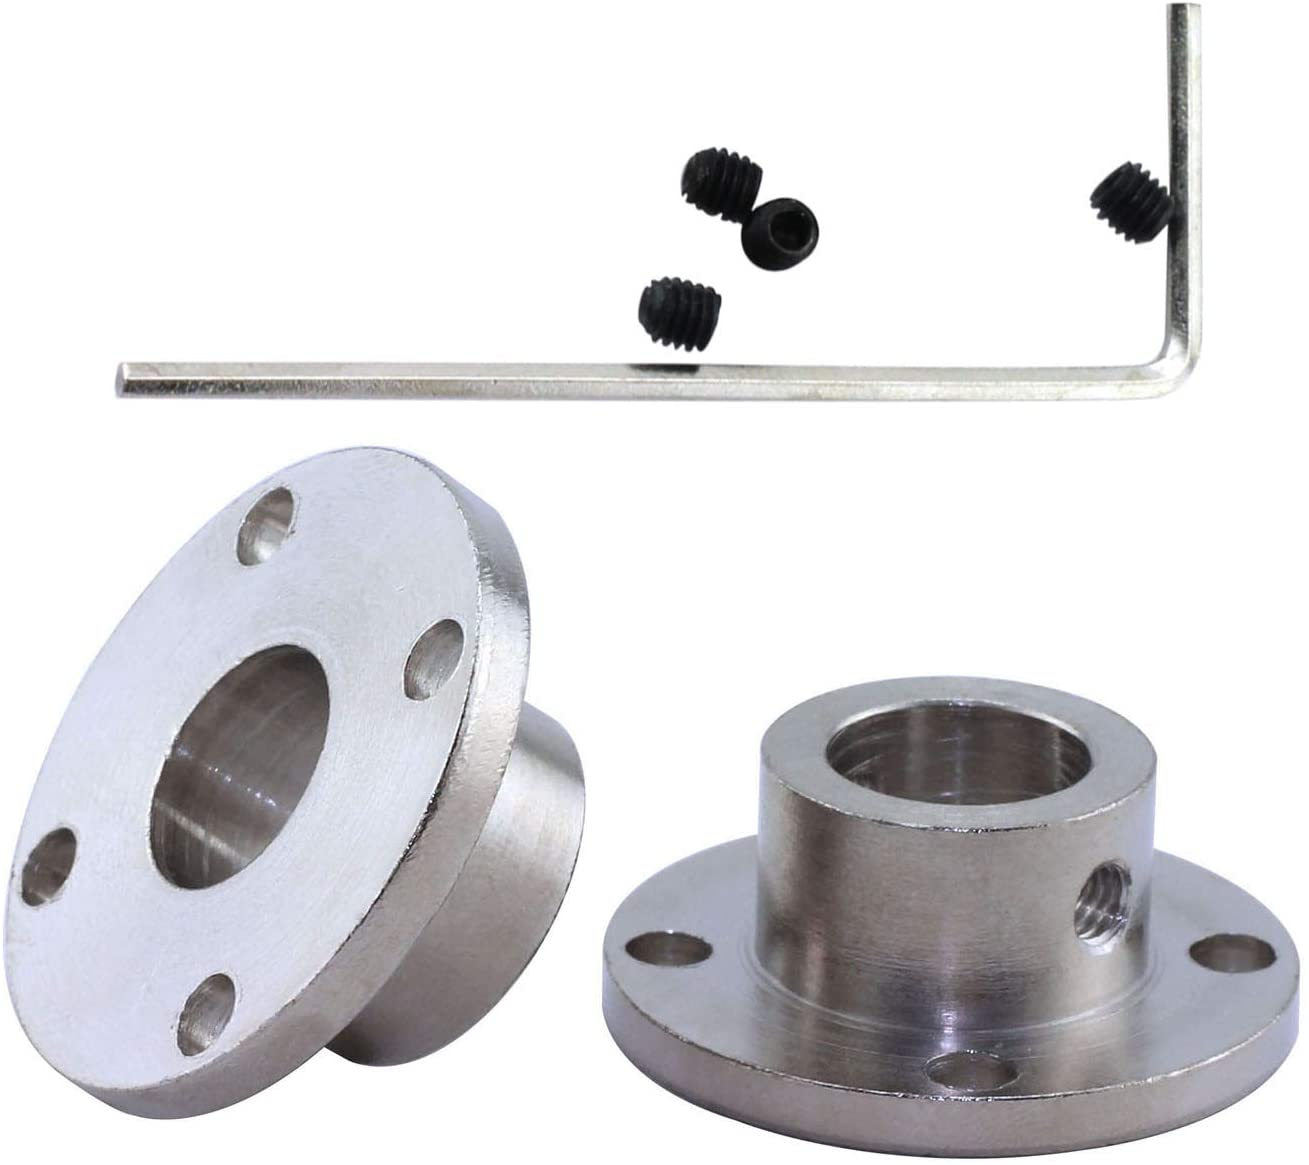 TOTOT 2X 12mm Flange Coupling + 1x M4 L Shape Allen Wrench + 4X M4 Fastening Screw High Hardness Rigid Flanged Joint Shaft Coupler Motor Connector